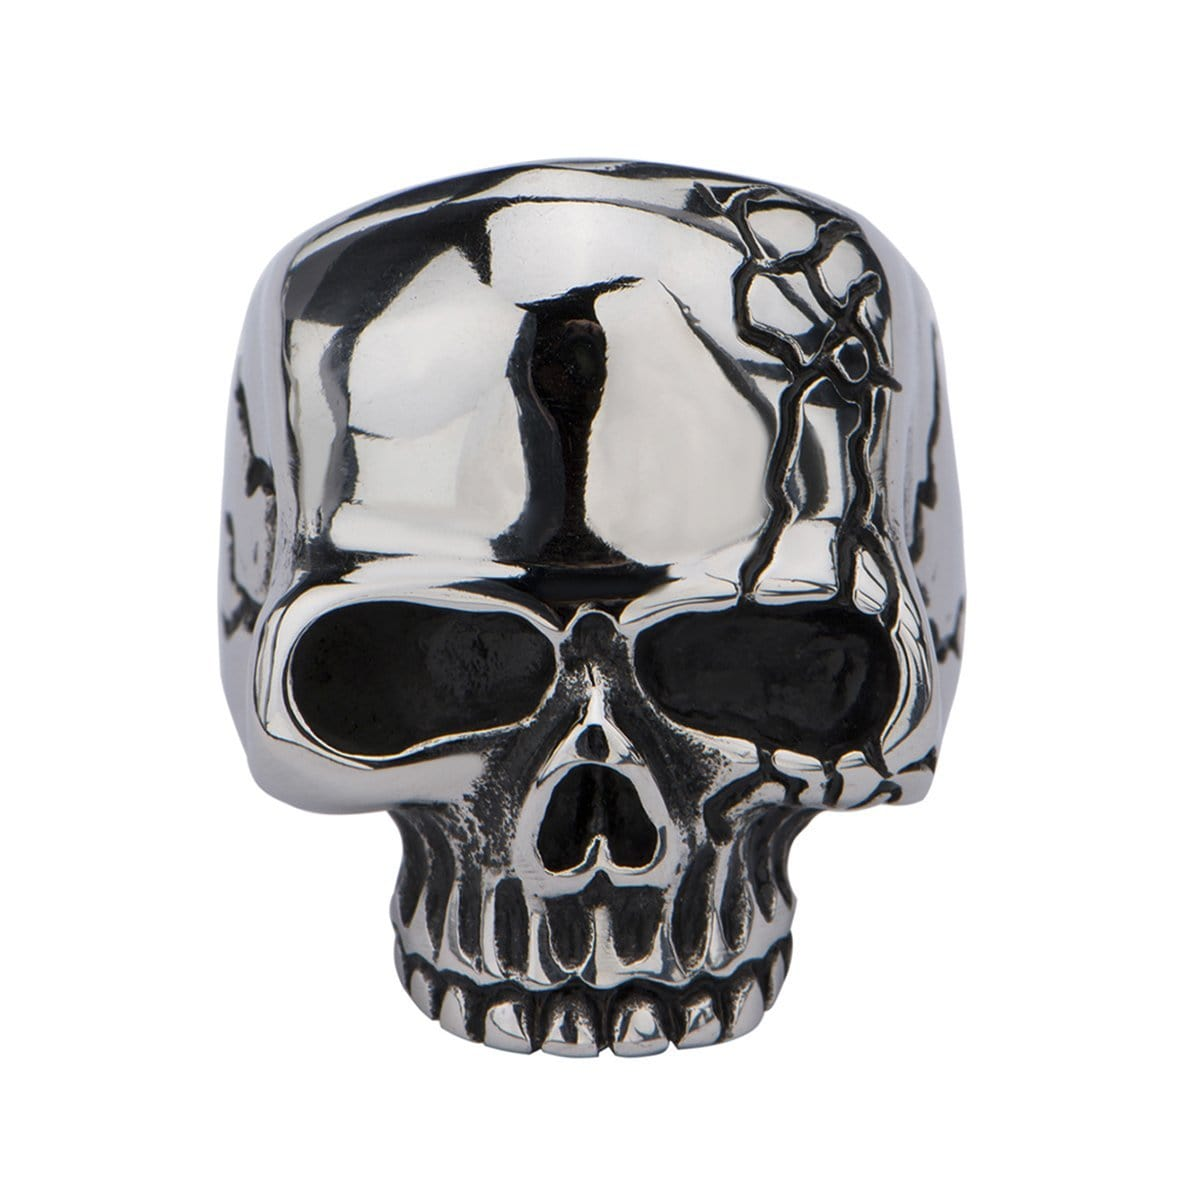 Silver Stainless Steel Hallowed Jaw Cracked Skull Ring Rings